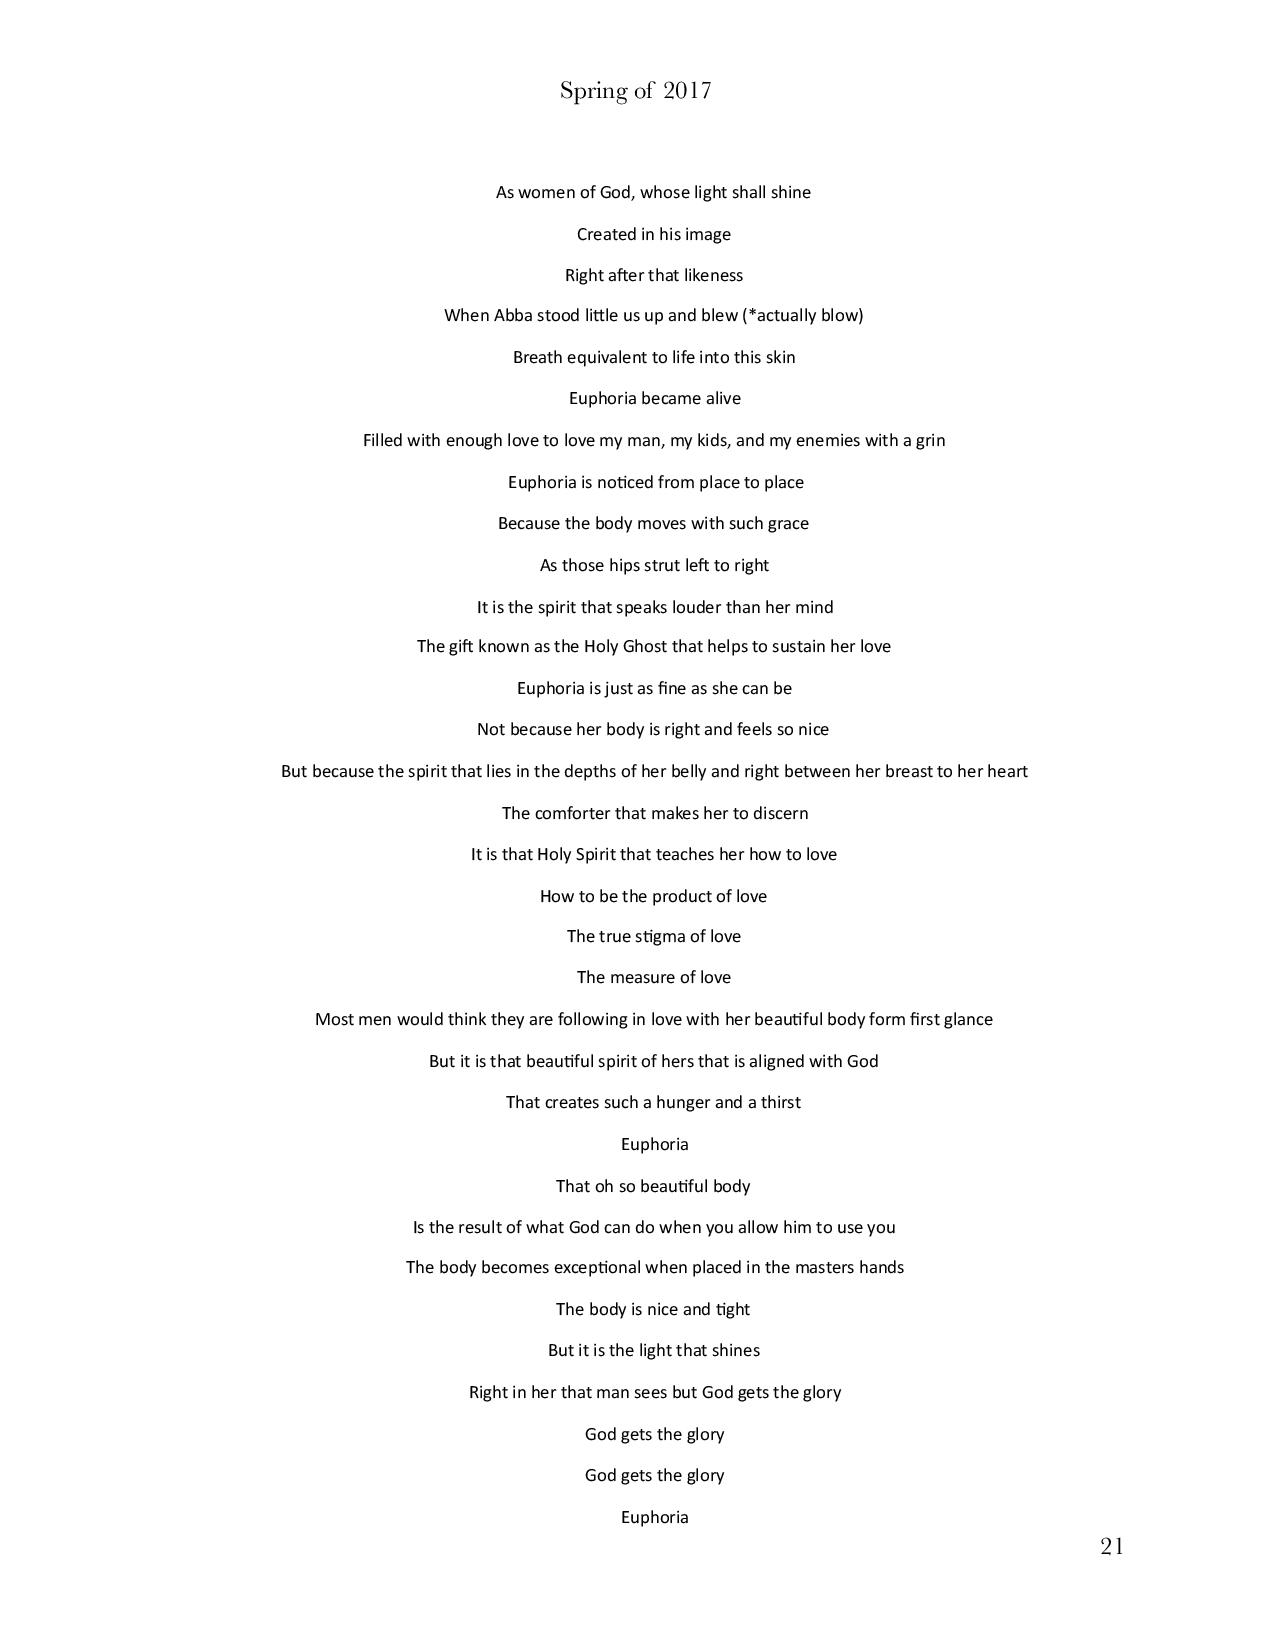 The Orator  (2)-page-021.jpg